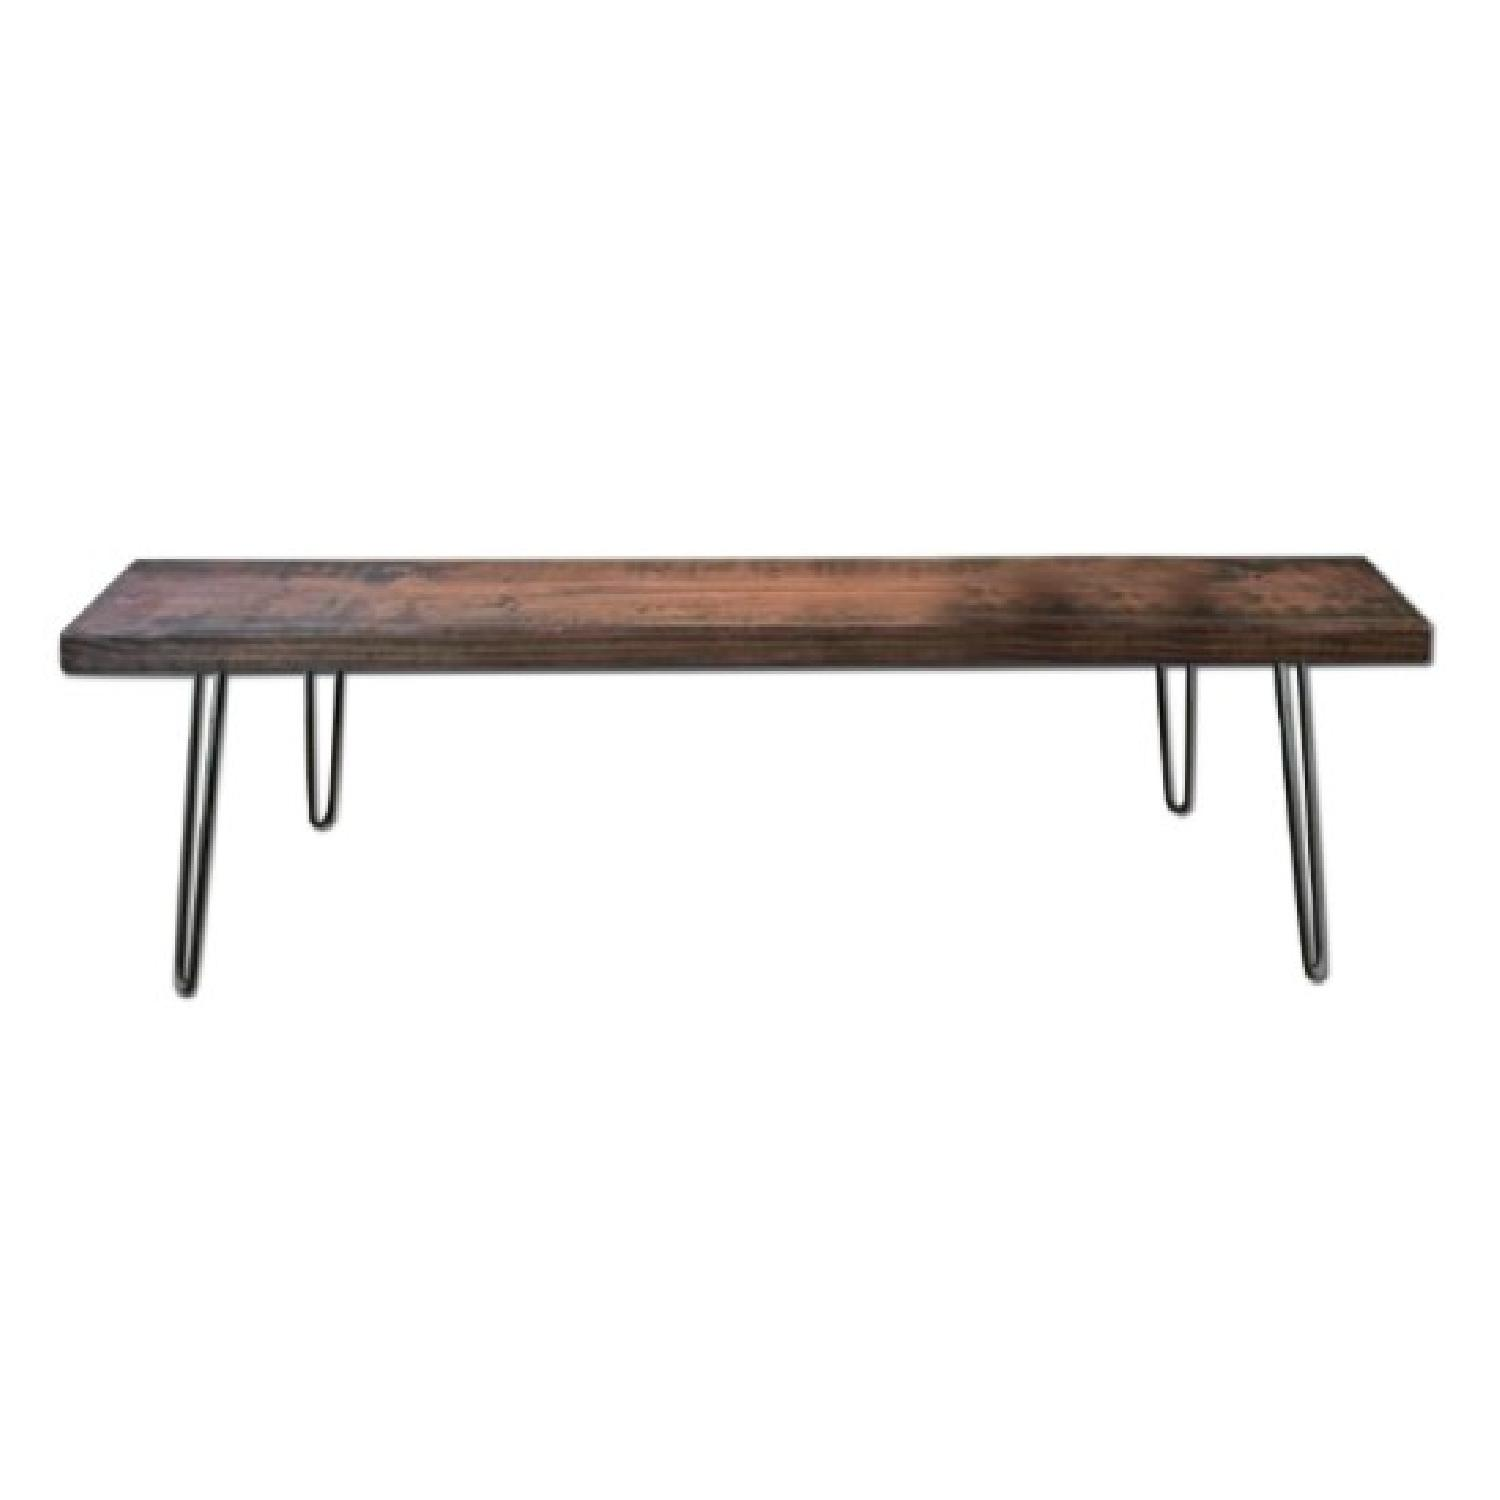 Reclaimed Coffee Table/Bench